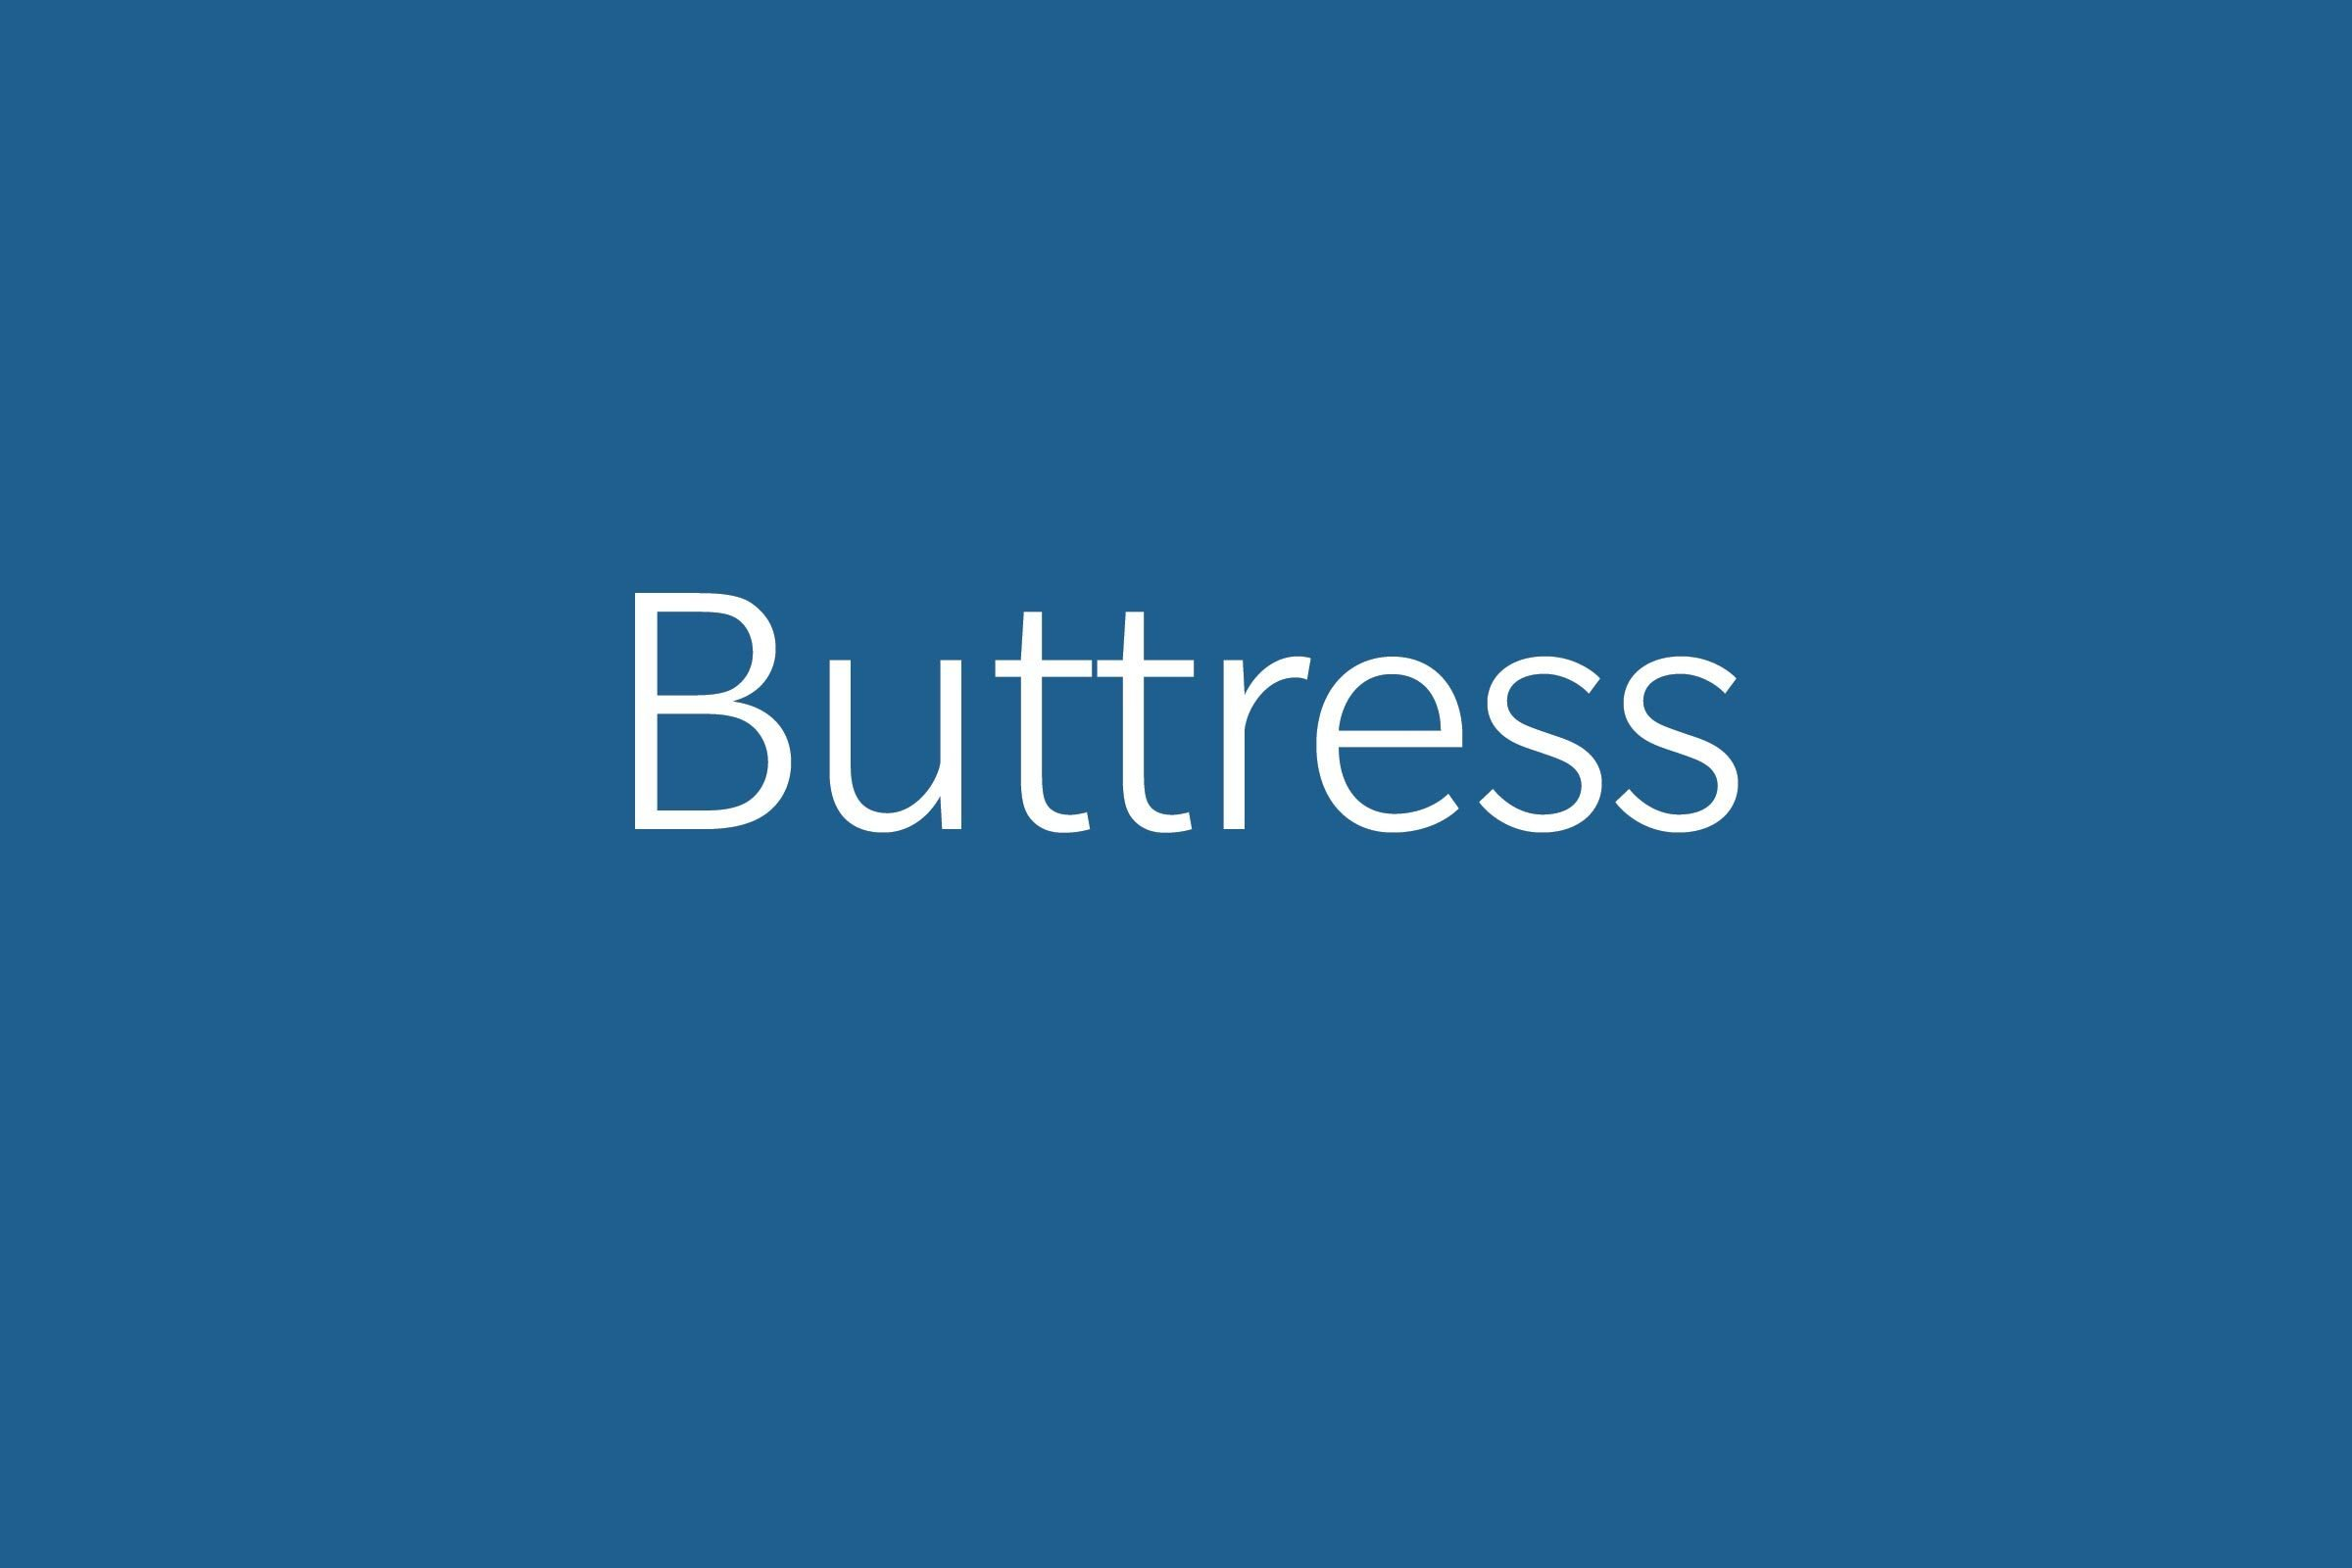 buttress funny word Funny words to say